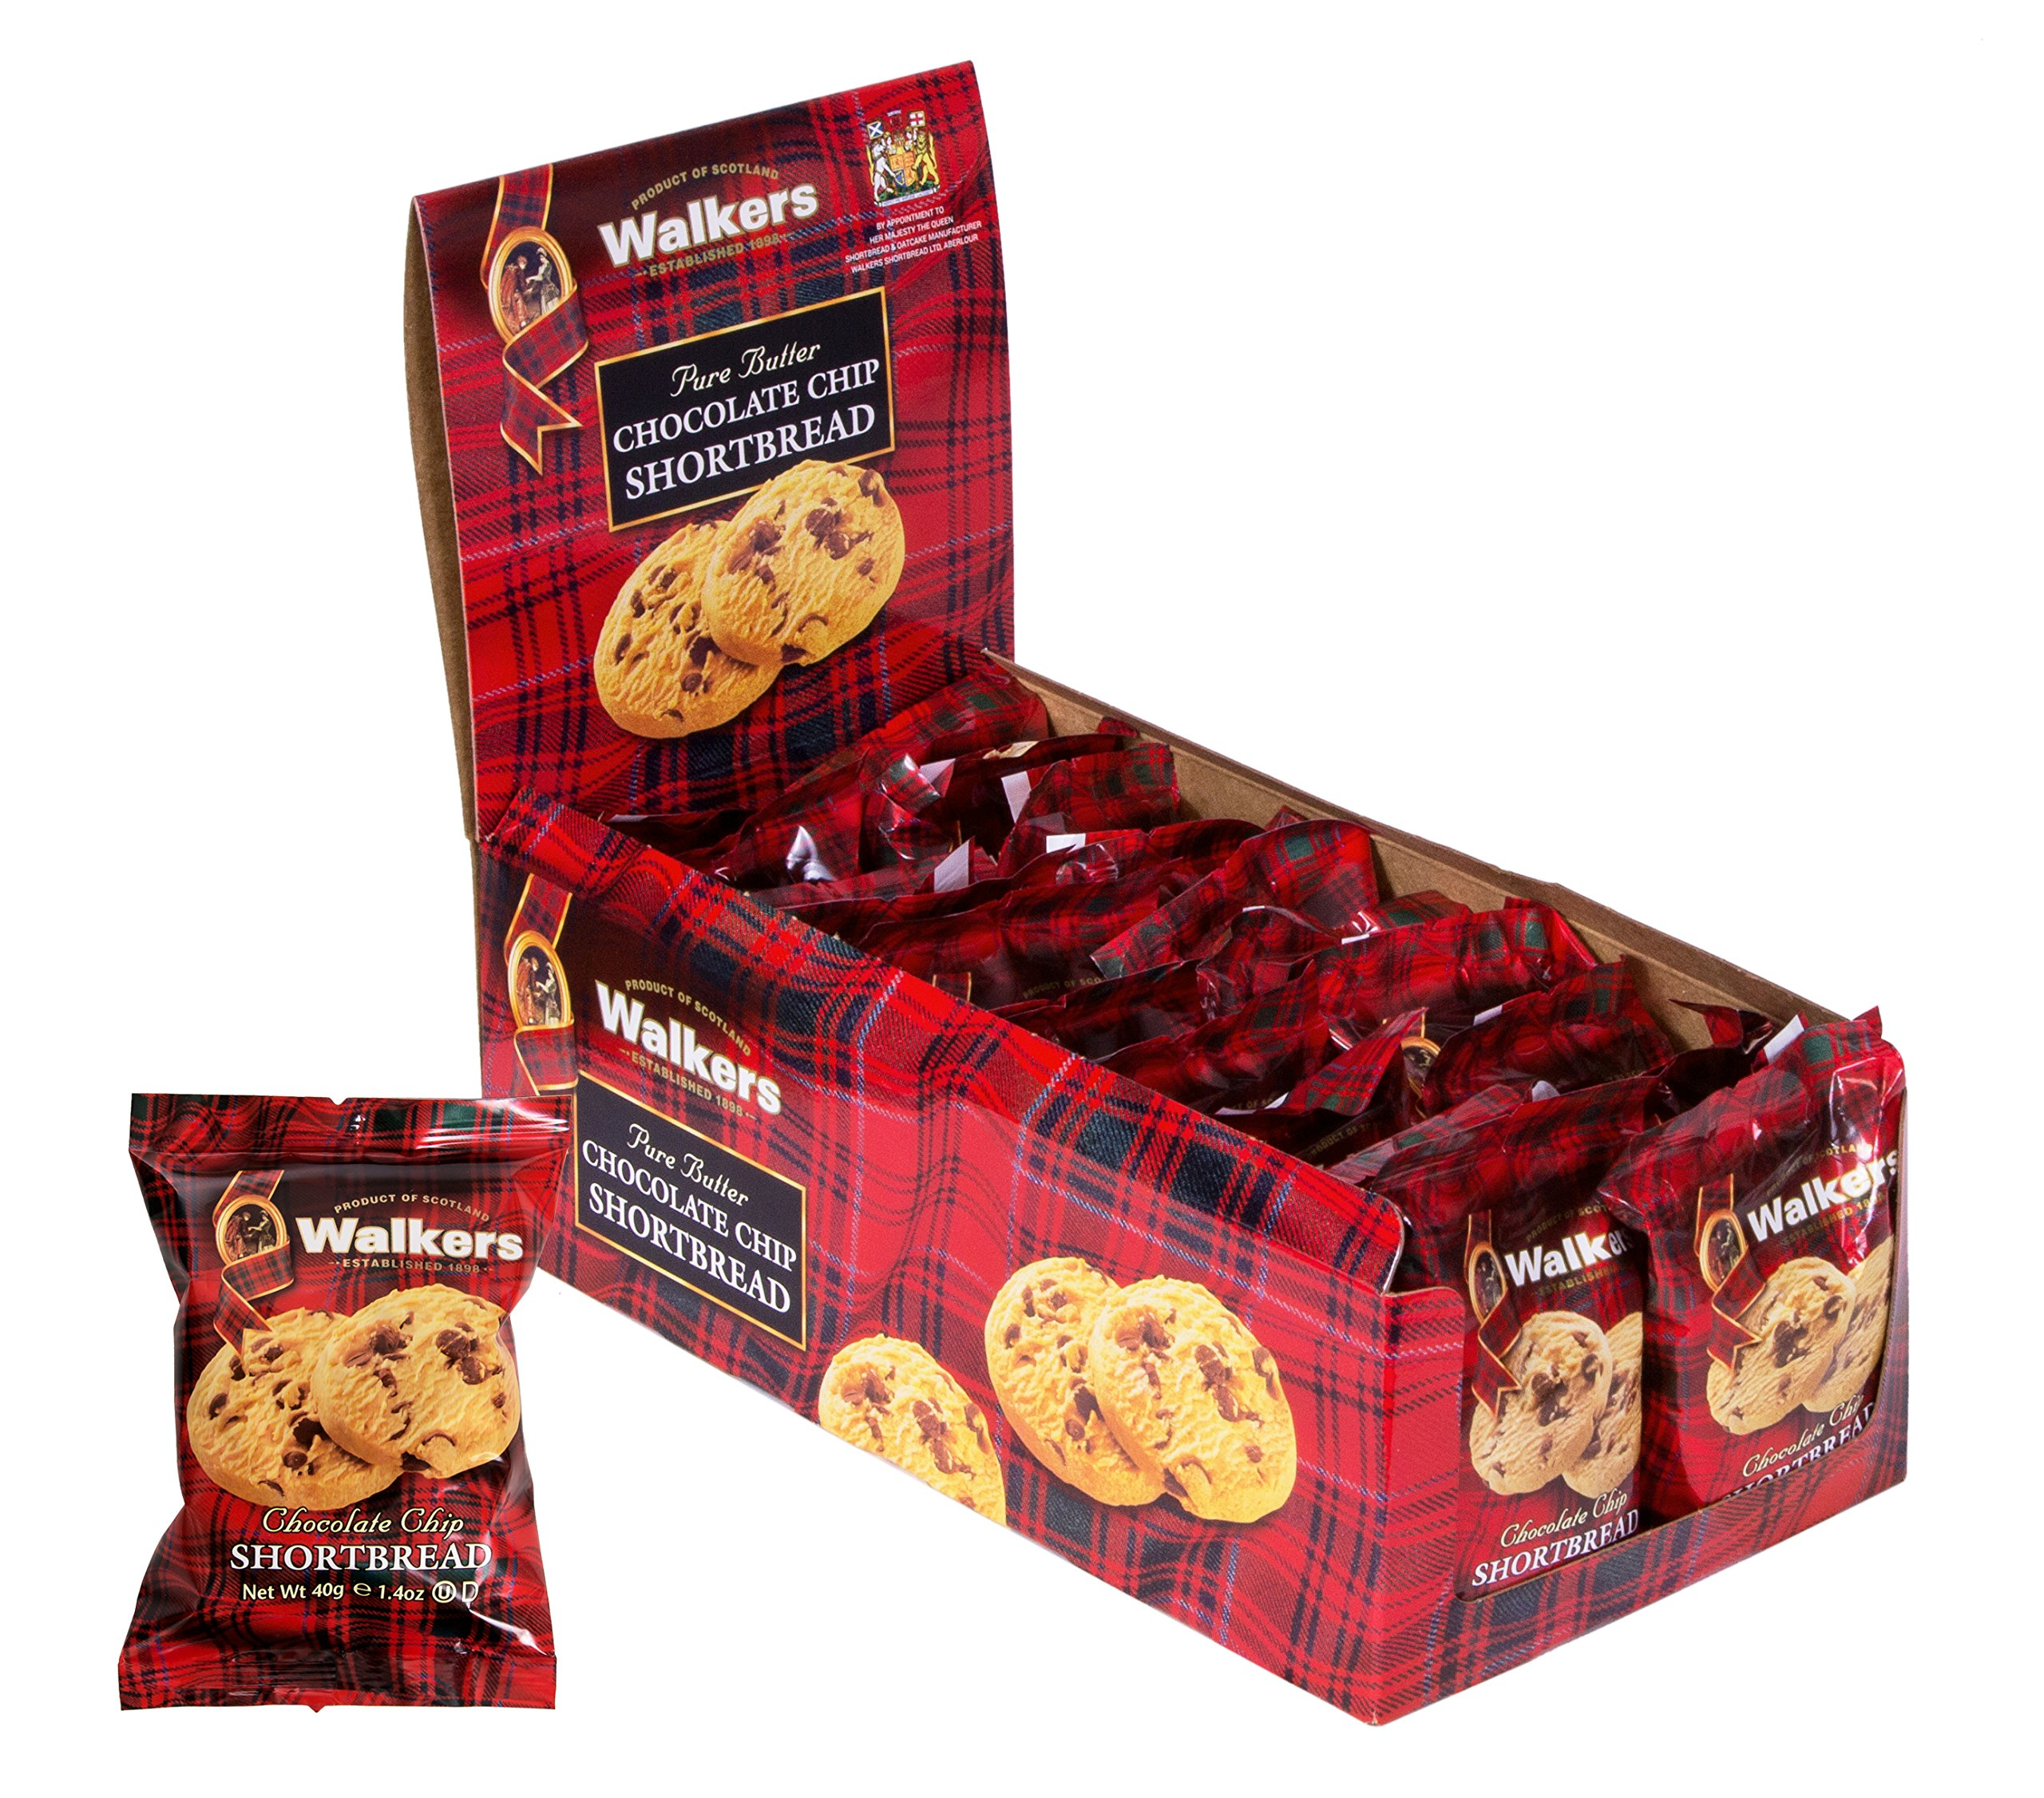 Walkers Shortbread Chocolate Chip, Traditional Pure Butter Shortbread Cookies, 2 Count (Pack of 20) by Walkers Shortbread